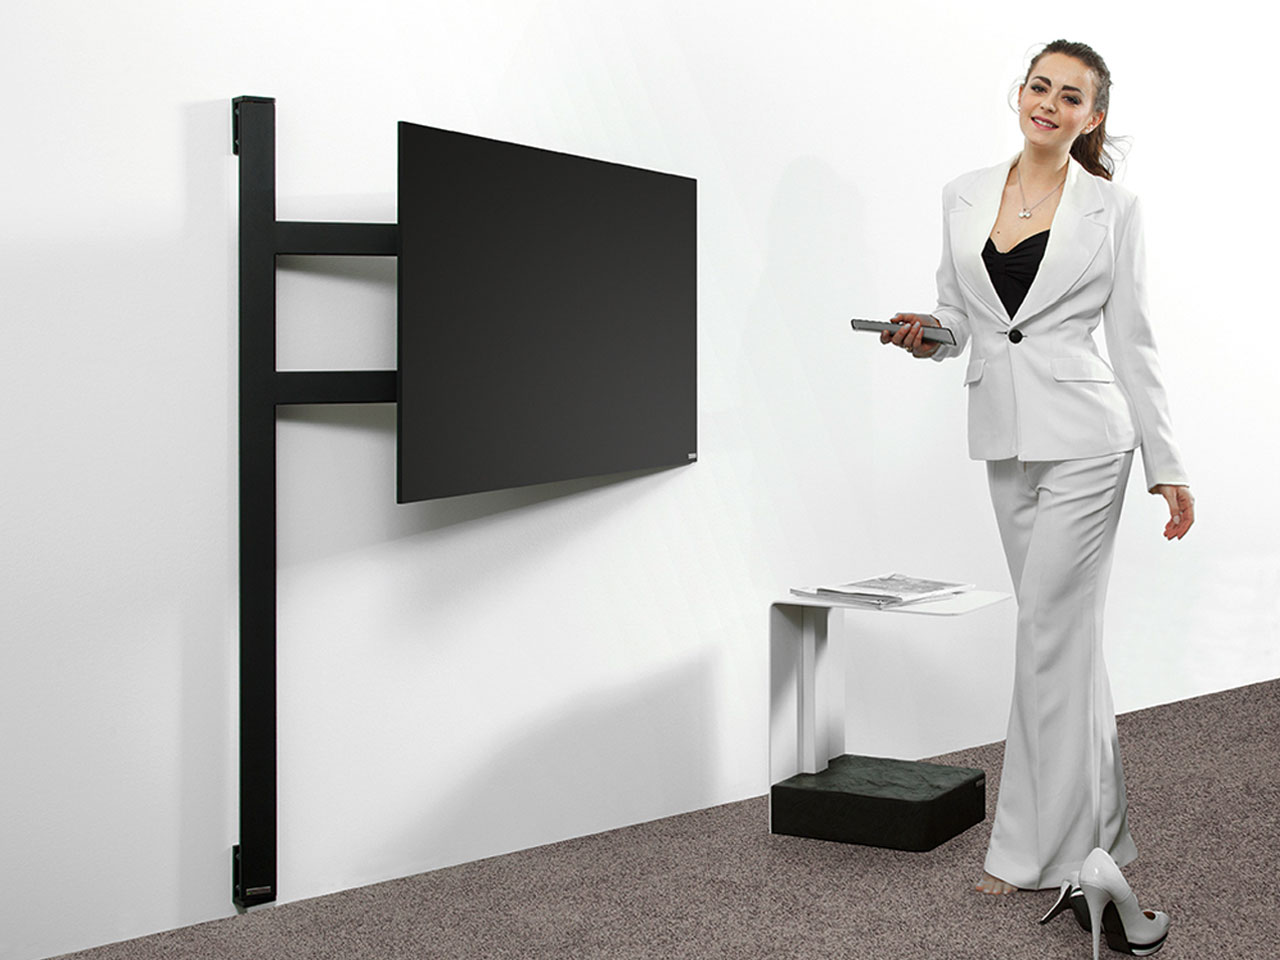 wissmann tv halter solution art121 g nstig kaufen cmb. Black Bedroom Furniture Sets. Home Design Ideas